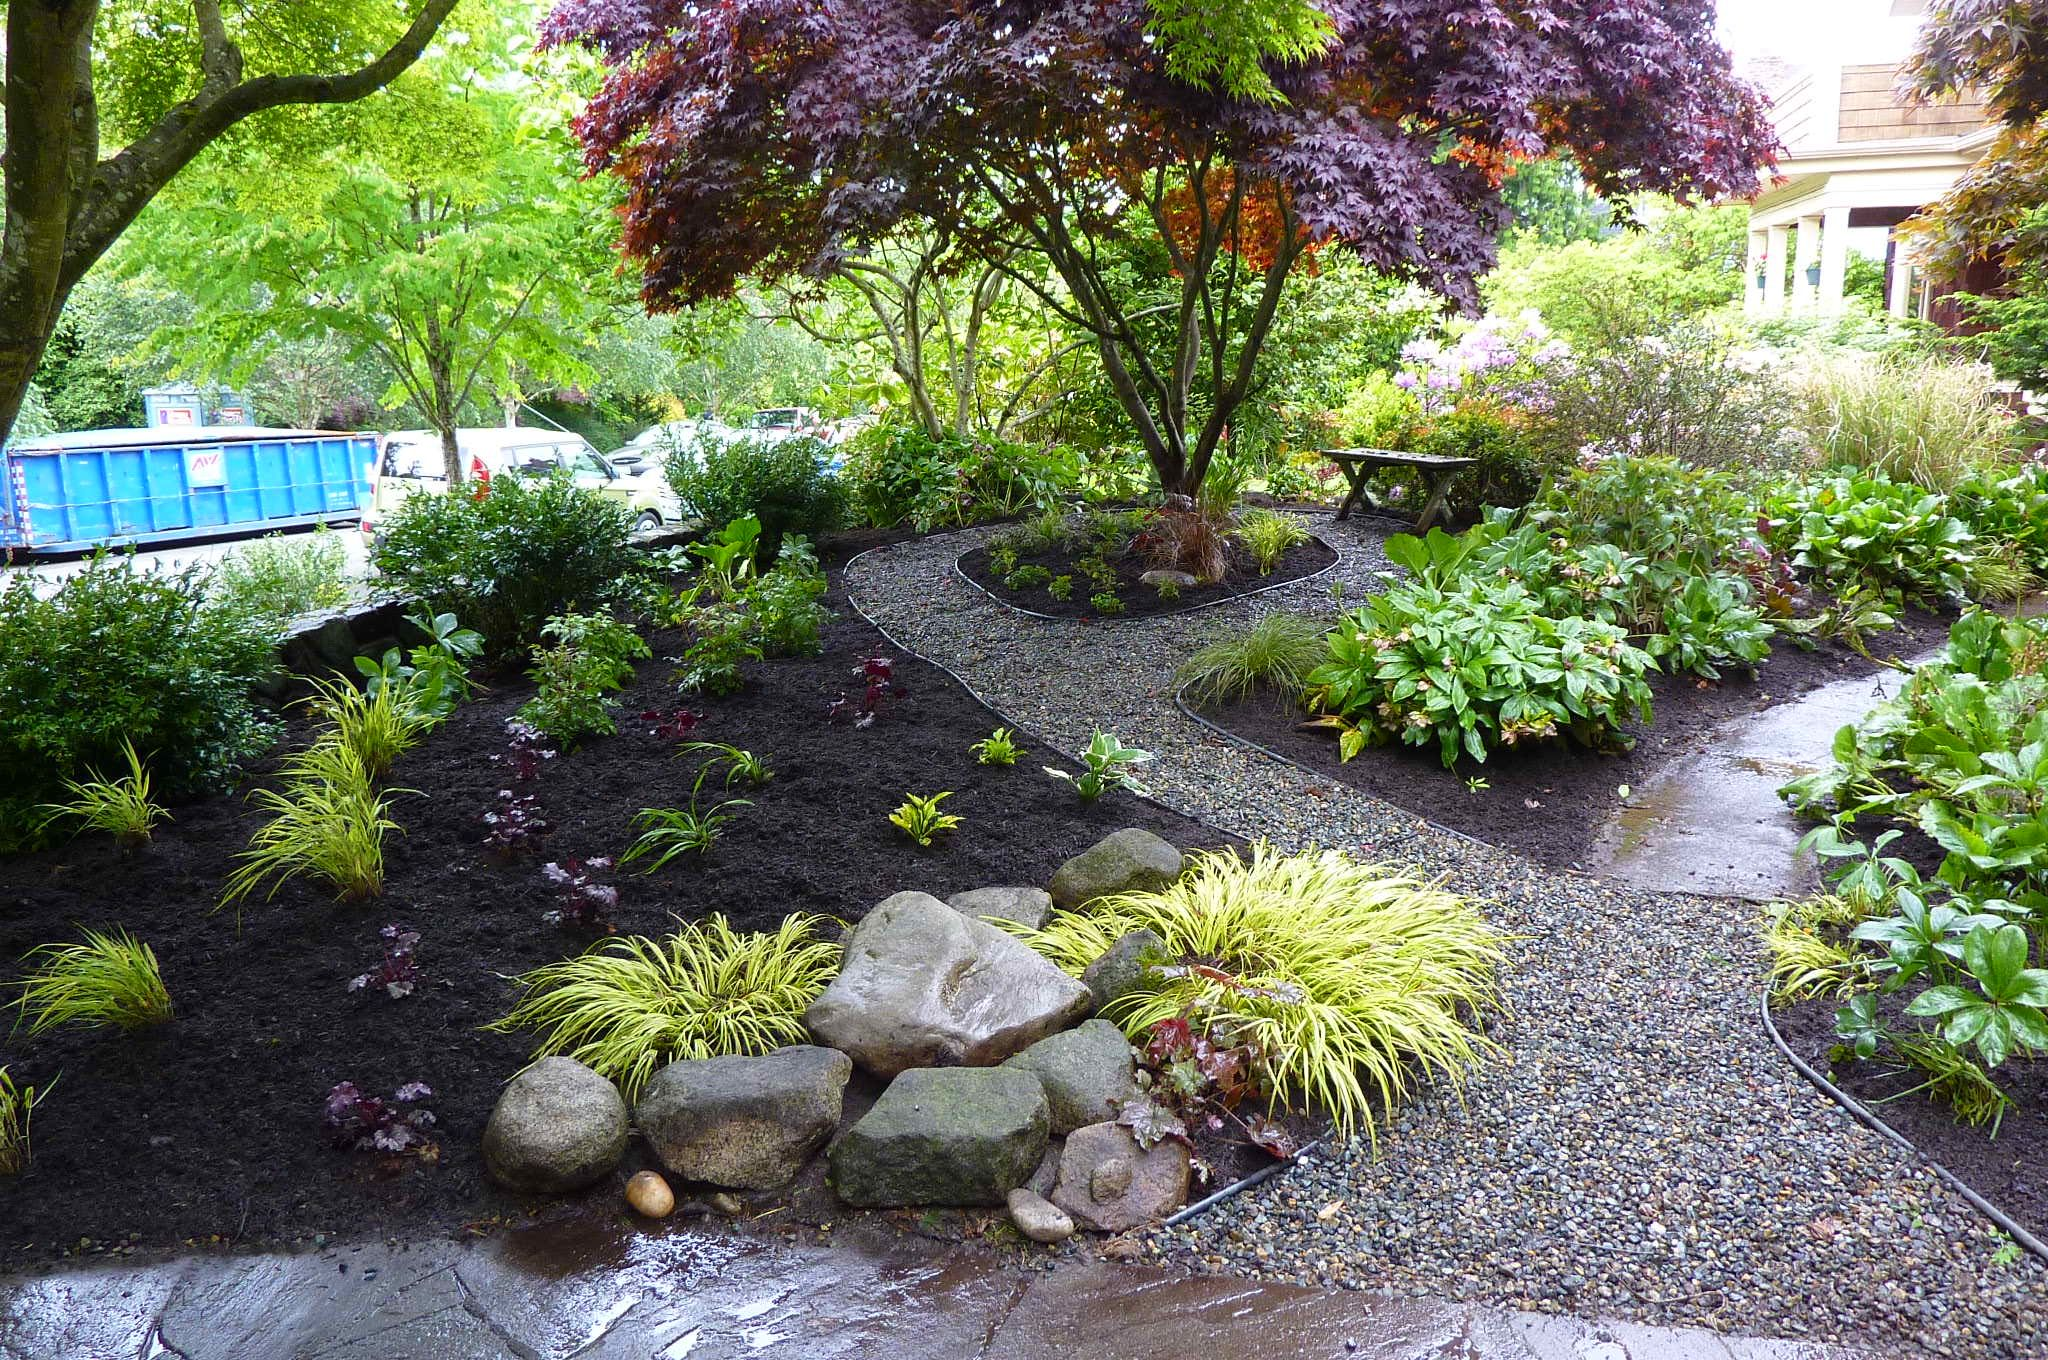 Pin By Kay Milow On Gardening Front Yard Landscaping Design Modern Landscaping Small Front Yard Landscaping